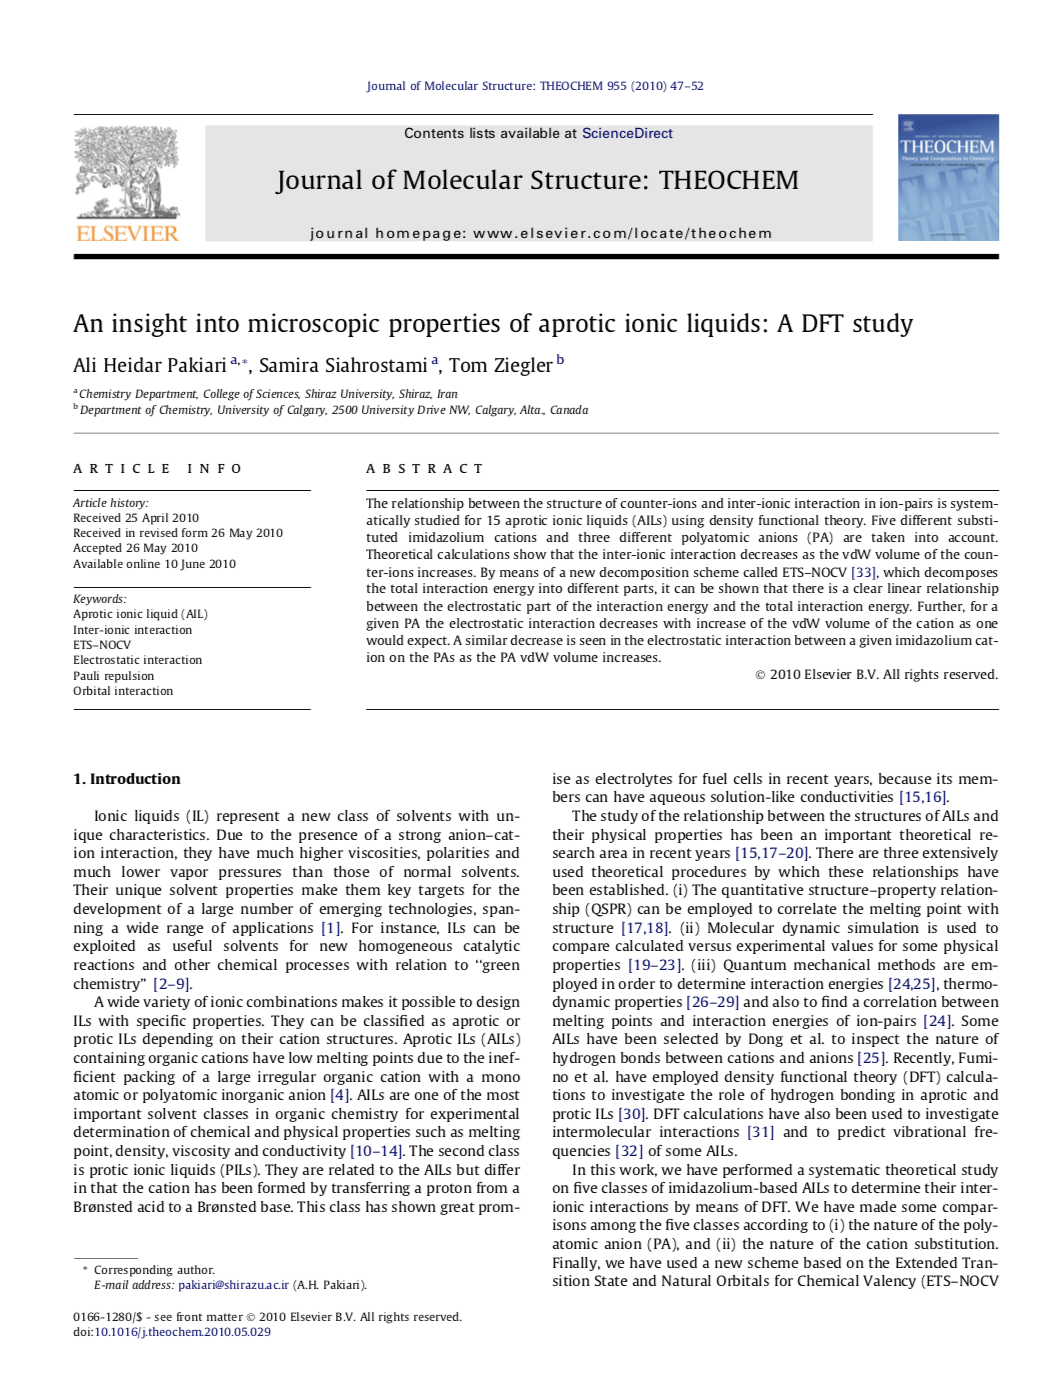 An Insight into Microscopic Properties of Aprotic Ionic Liquids: A DFT Study